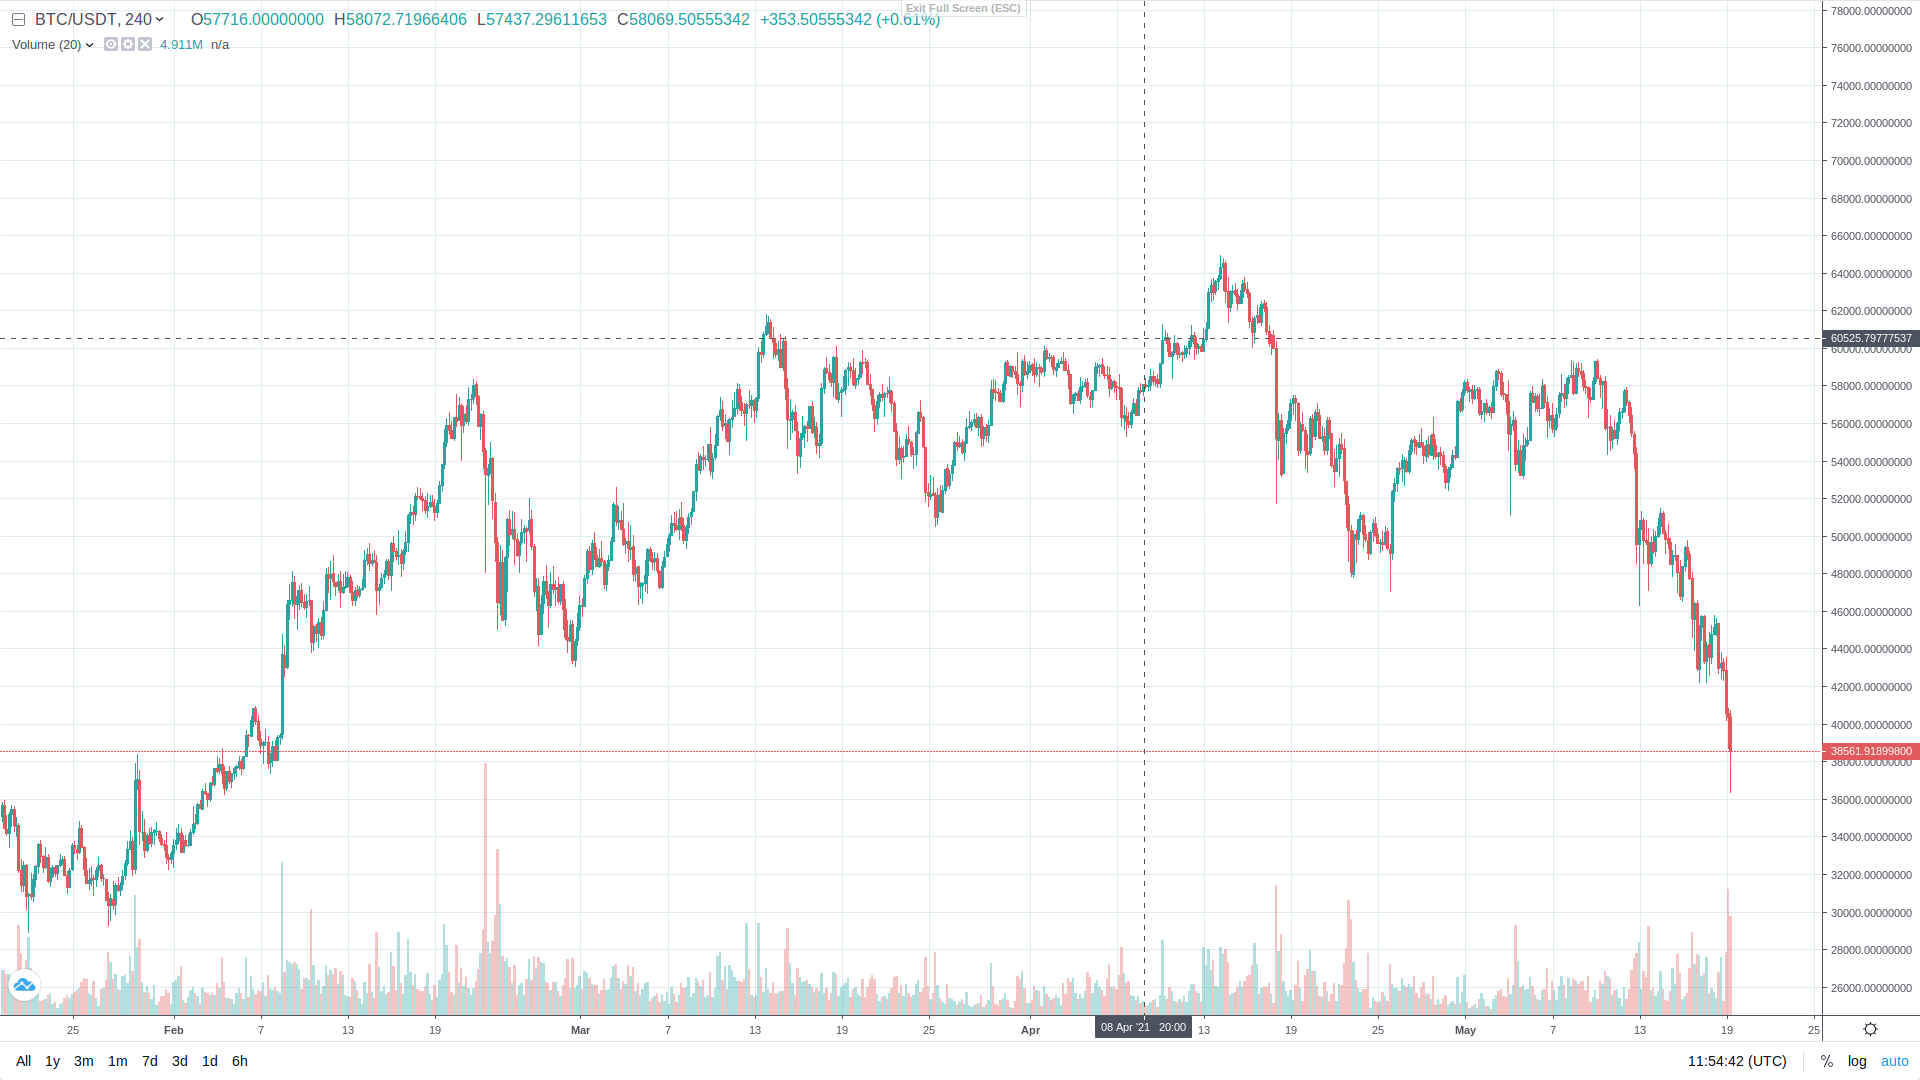 May 2021 Extreme Bitcoin sell-off and Bitcoin buying opportunity